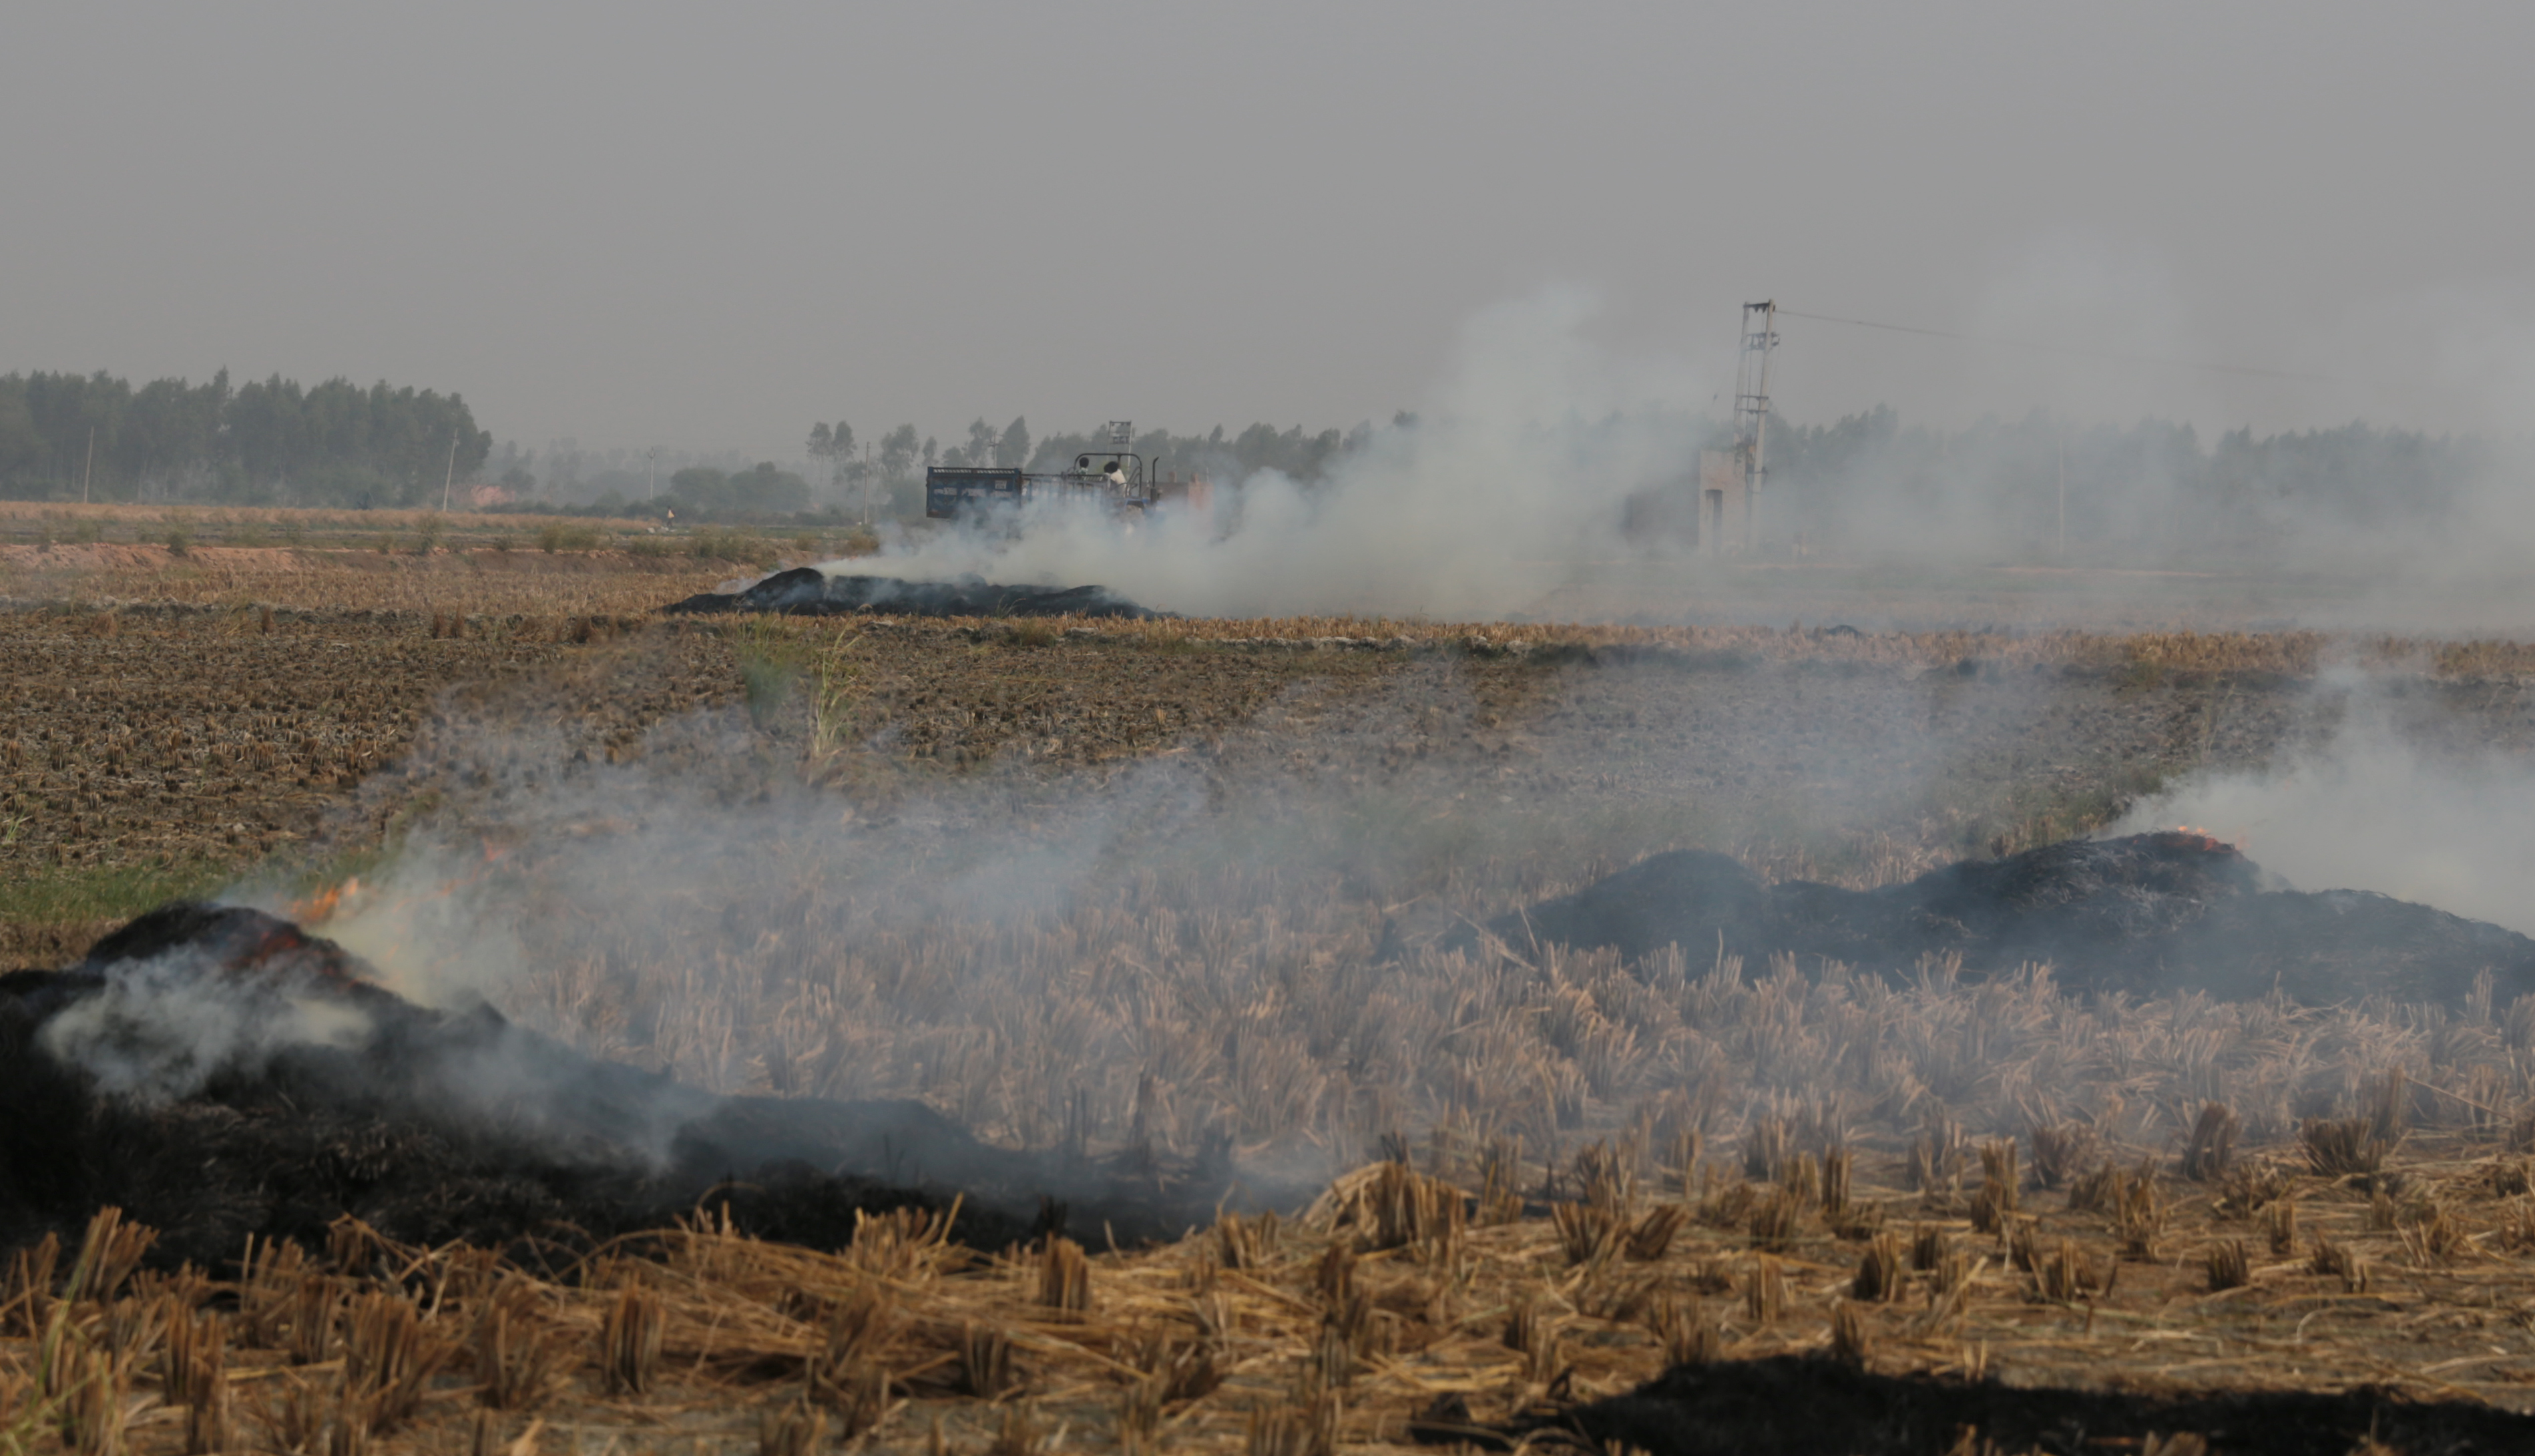 Paddy fields burning: Smog shrouds national capital